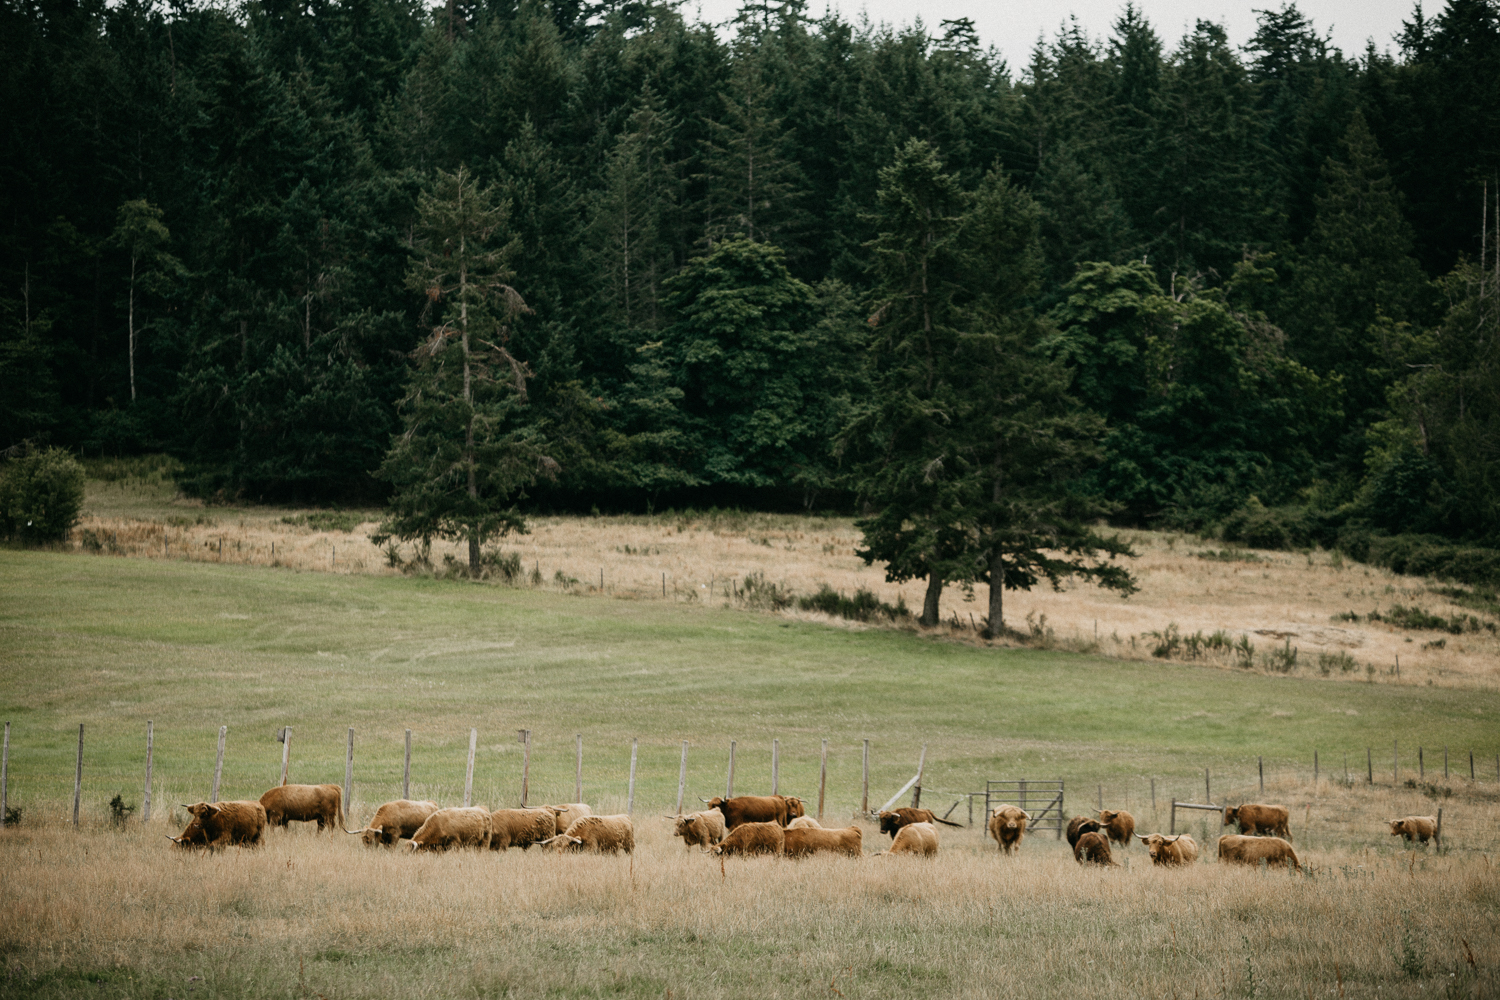 cows in a field at Bird's Eye Cove wedding, Vancouver Island